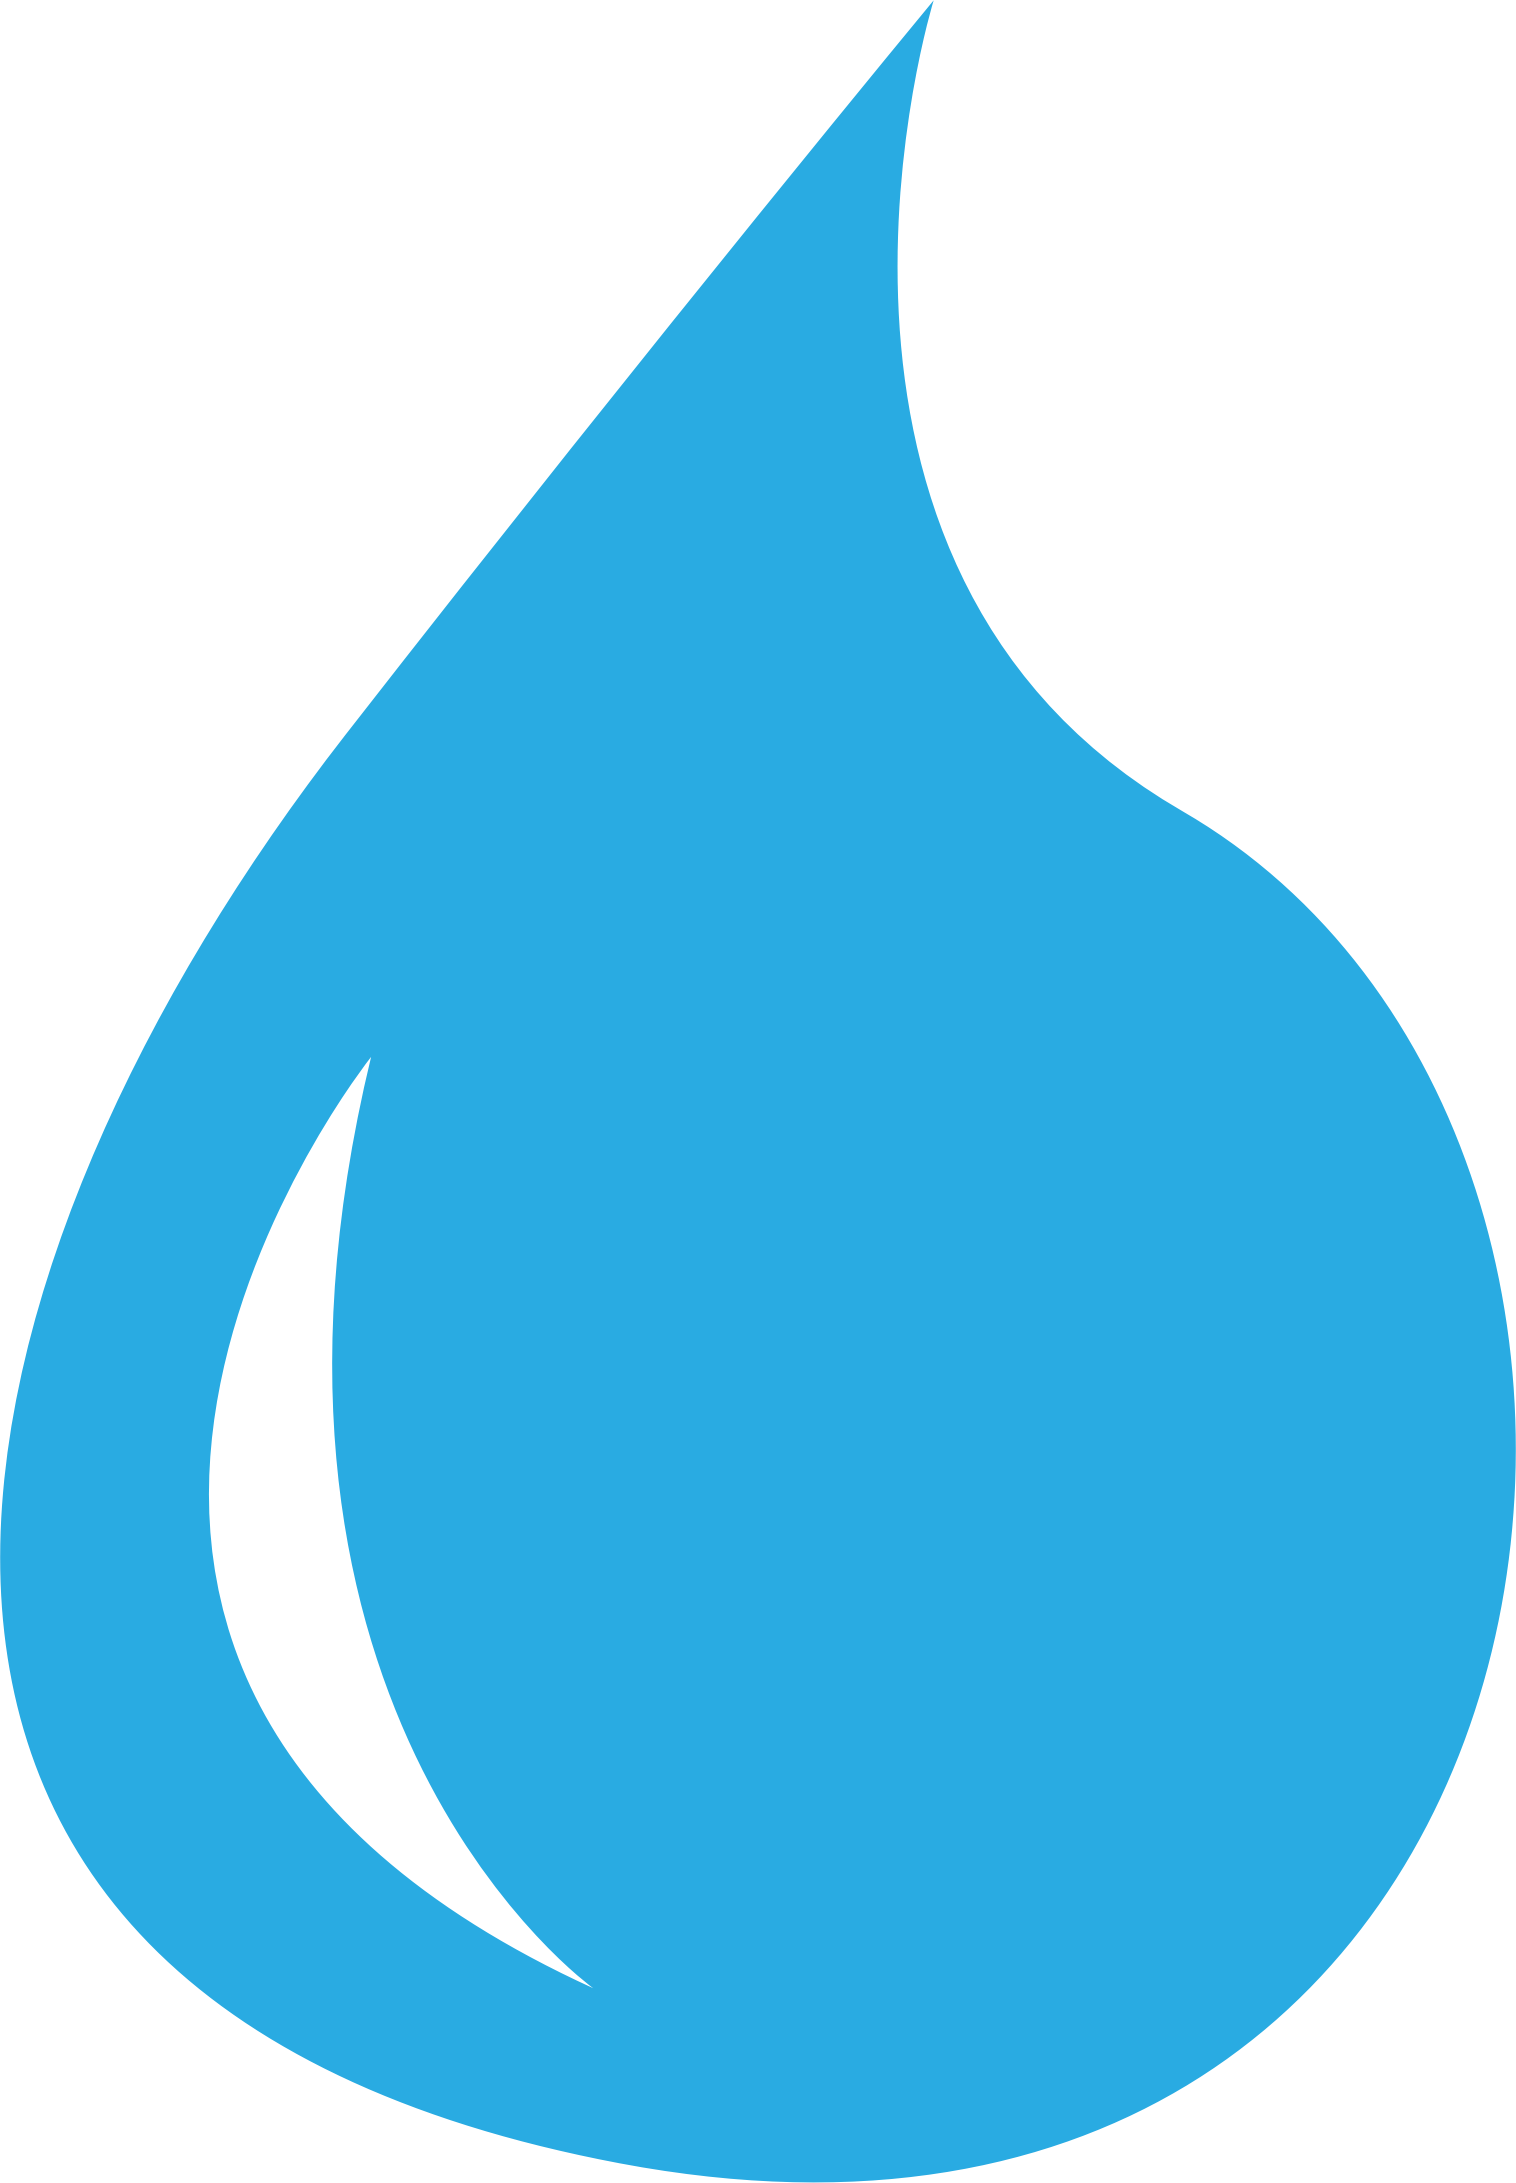 Water Droplet.png Clip Art - ClipArt Best